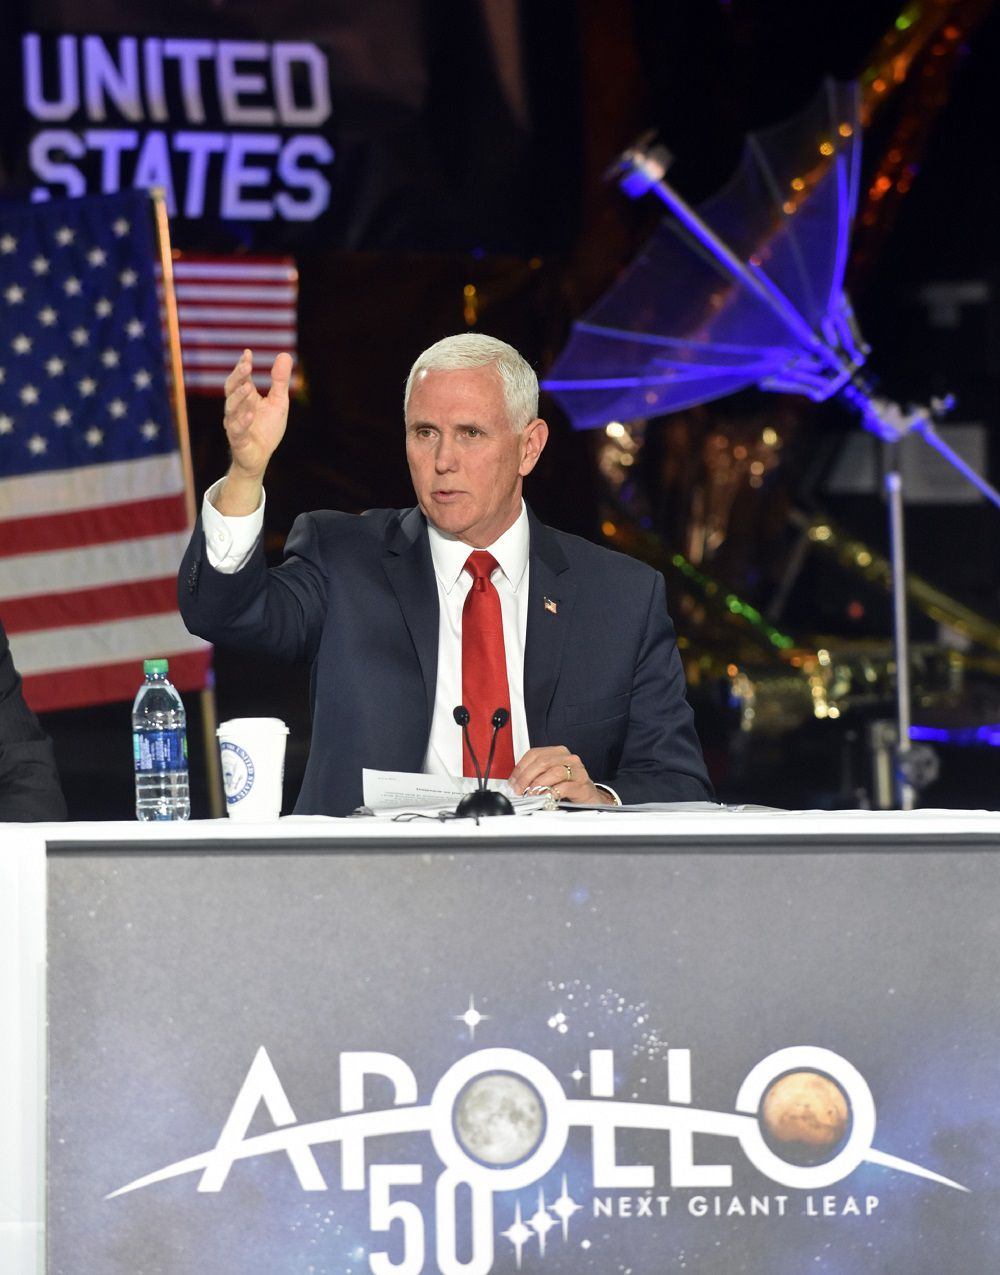 VP Pence 1 at podium.jpg